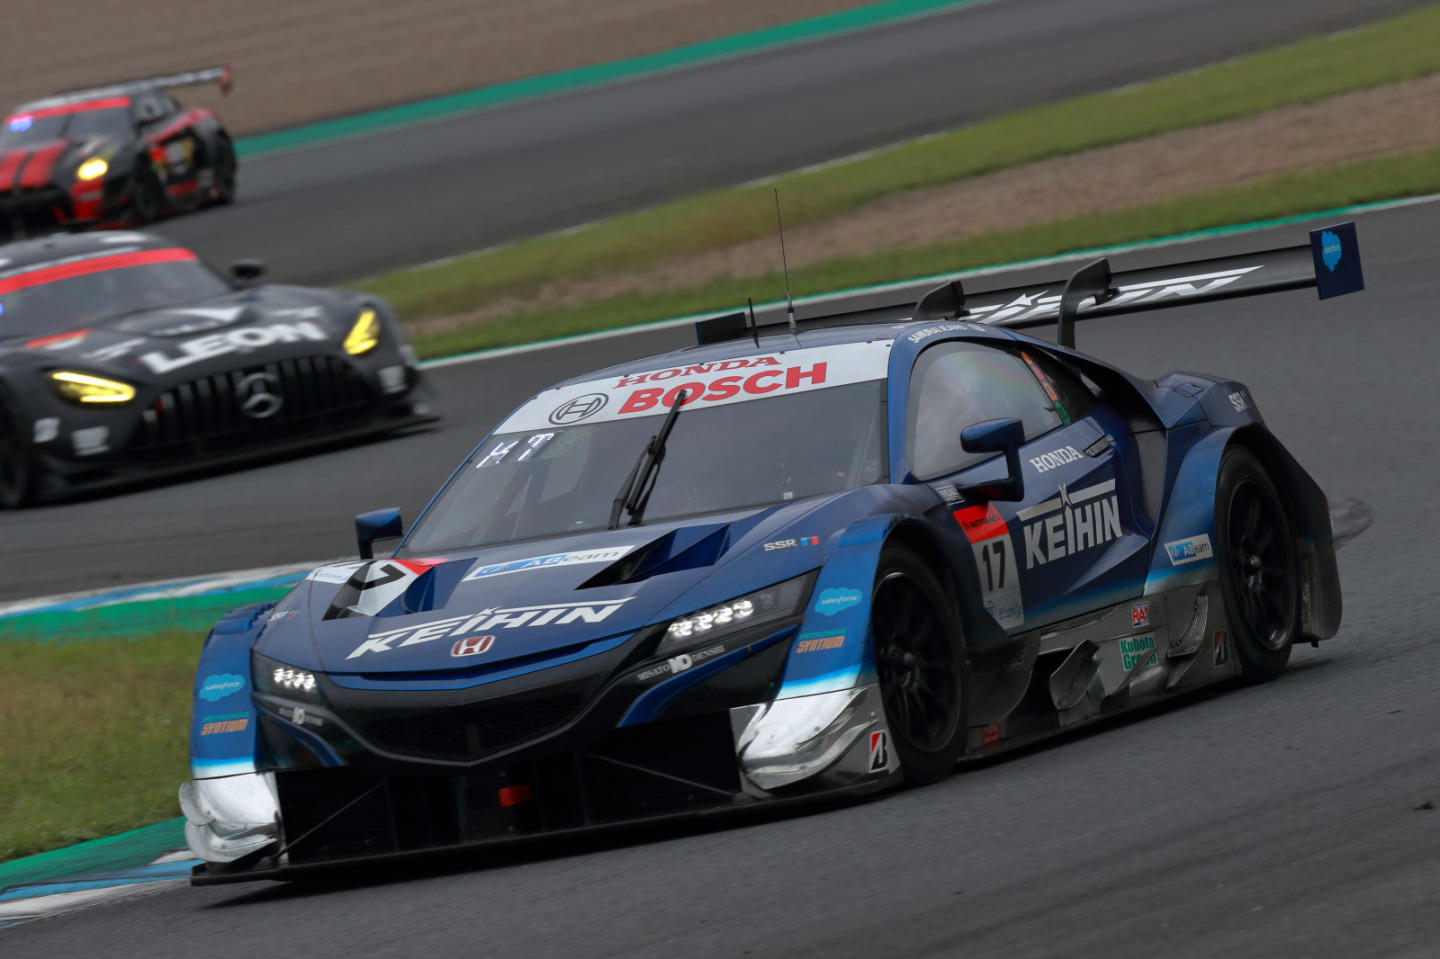 hondarealracing2020supergtmotegi